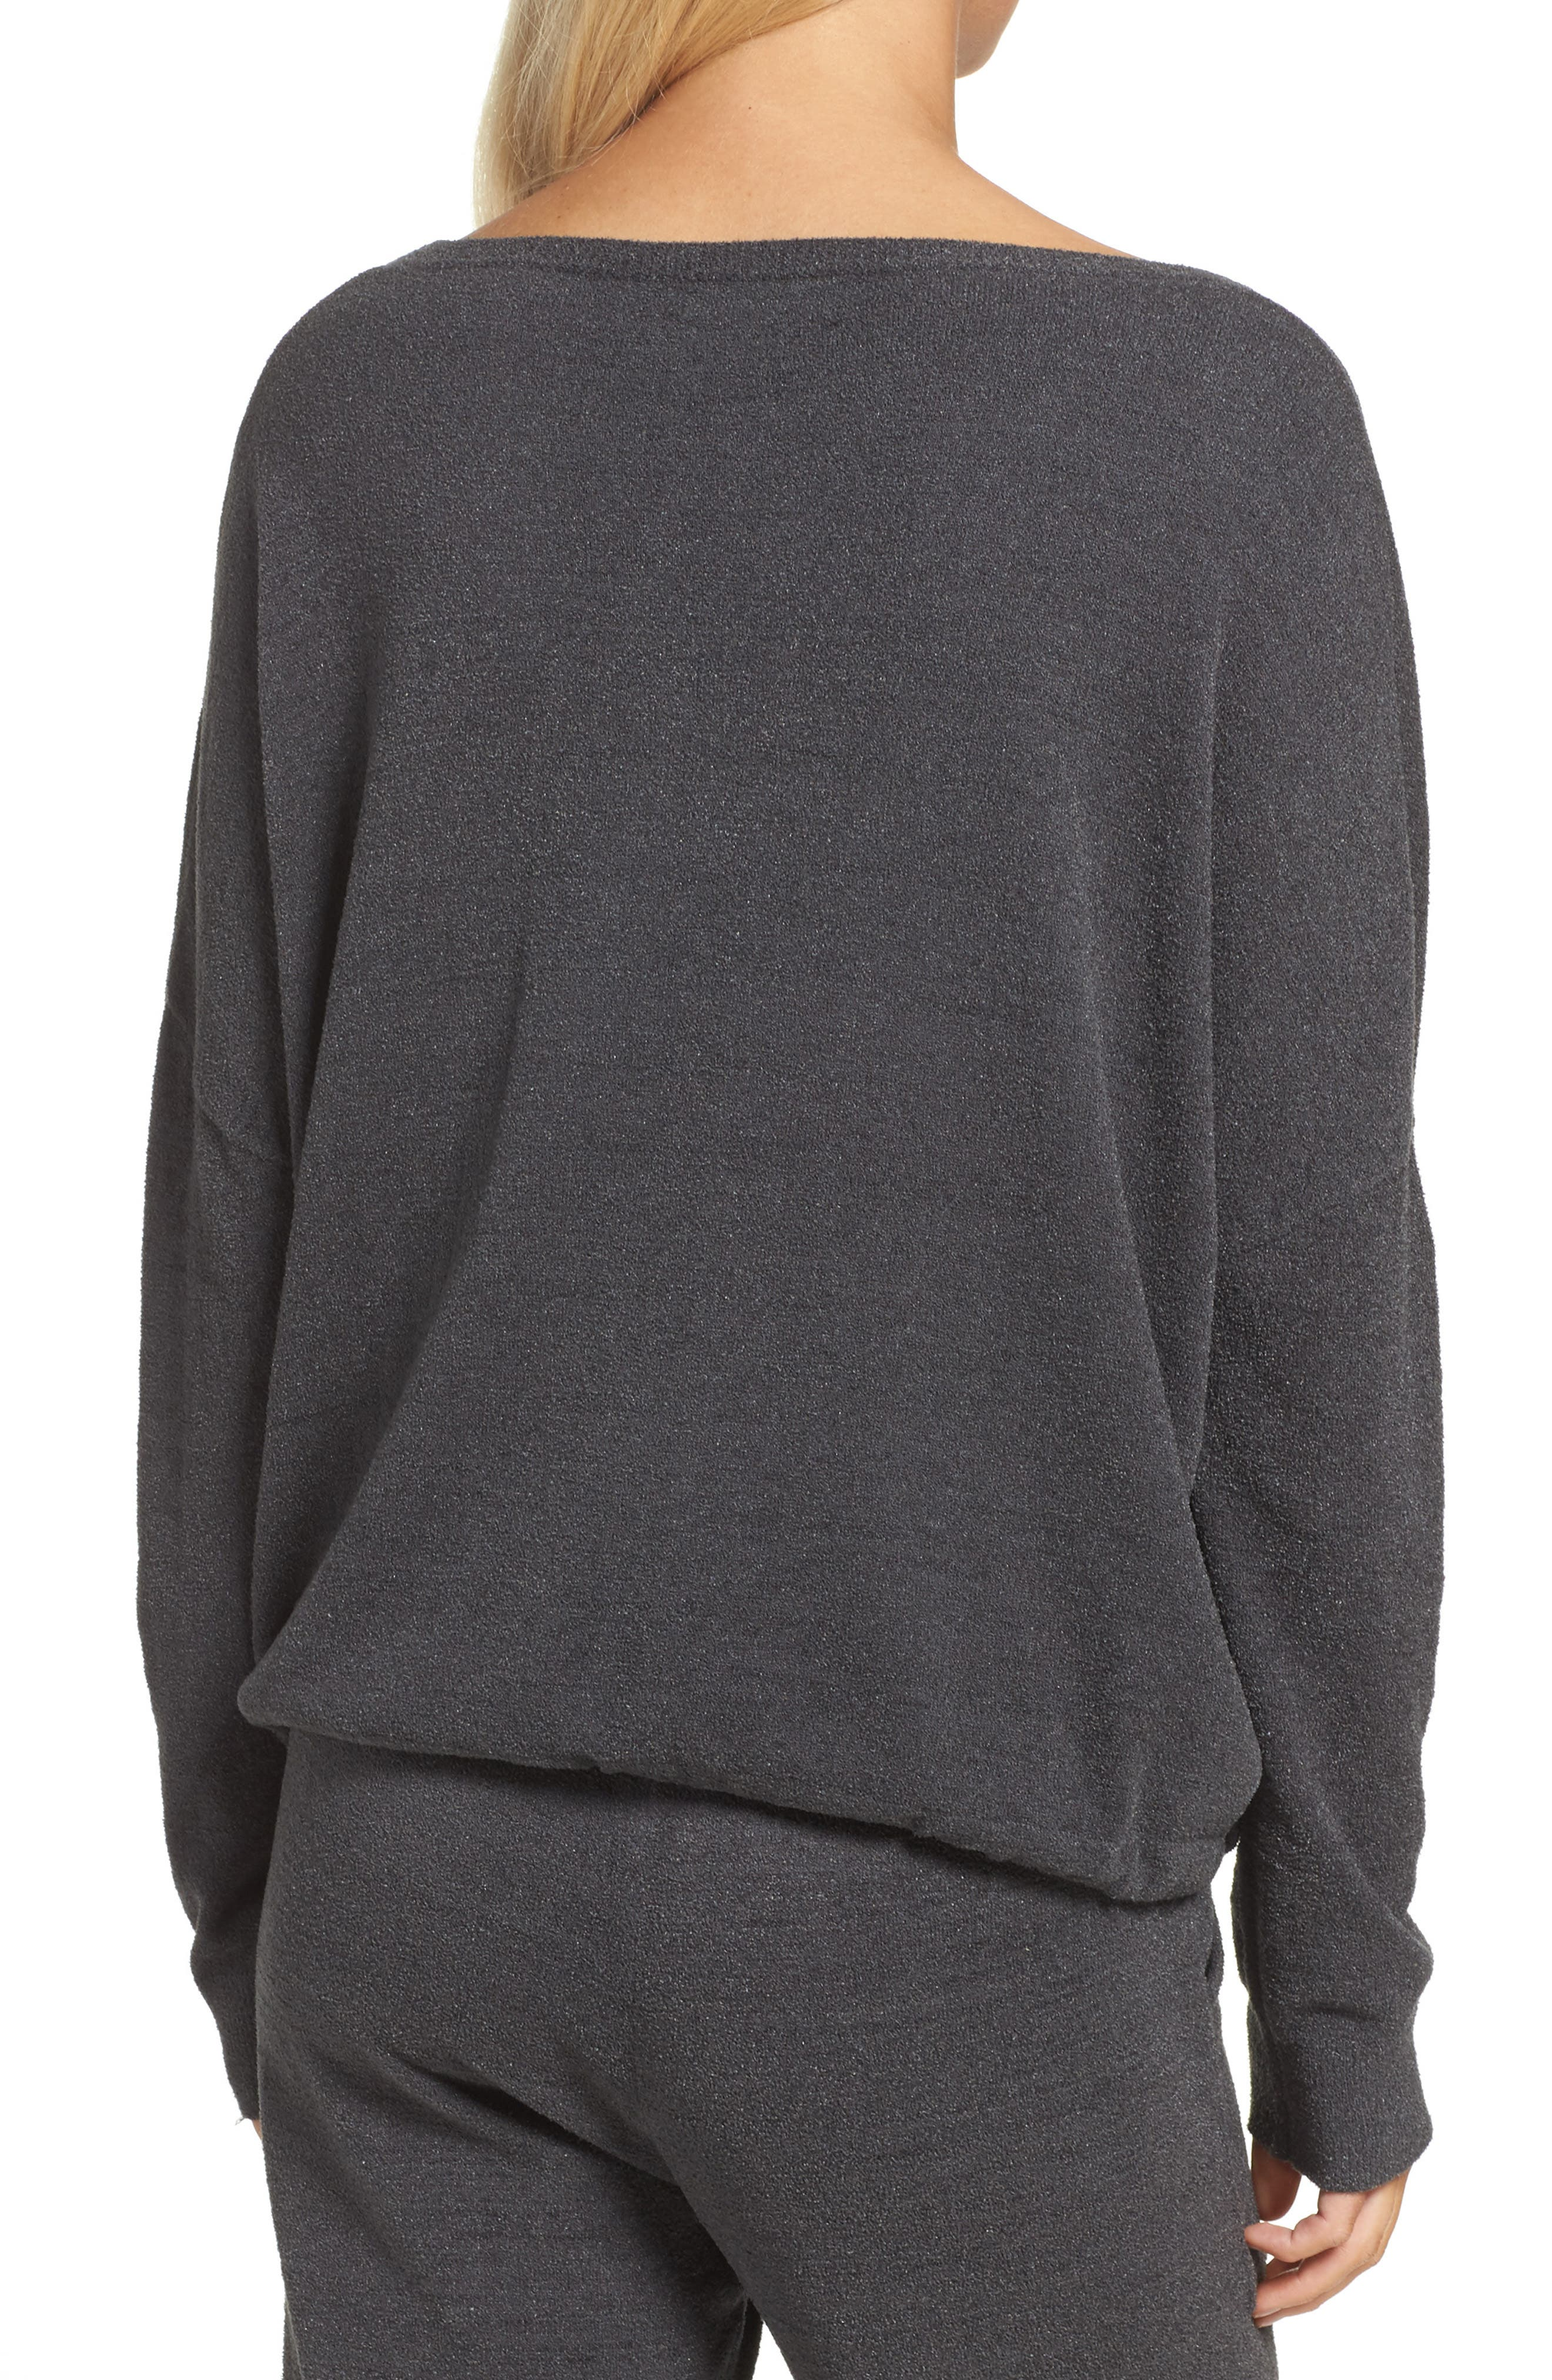 Cozychic Ultra Lite<sup>®</sup> Lounge Pullover,                             Alternate thumbnail 2, color,                             CARBON